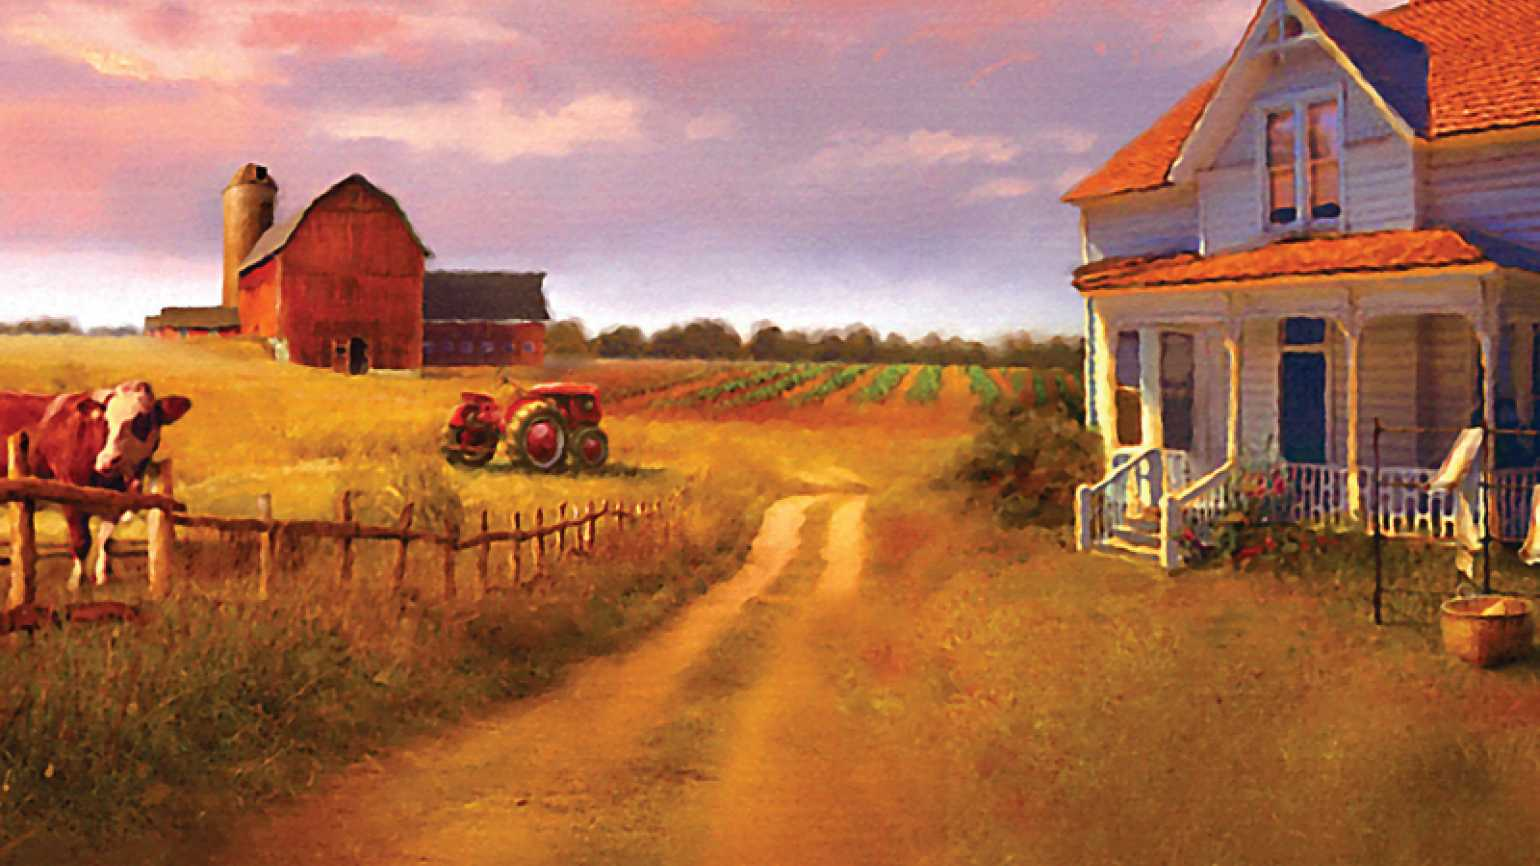 A peaceful farm scene on the cover of Before the Dawn